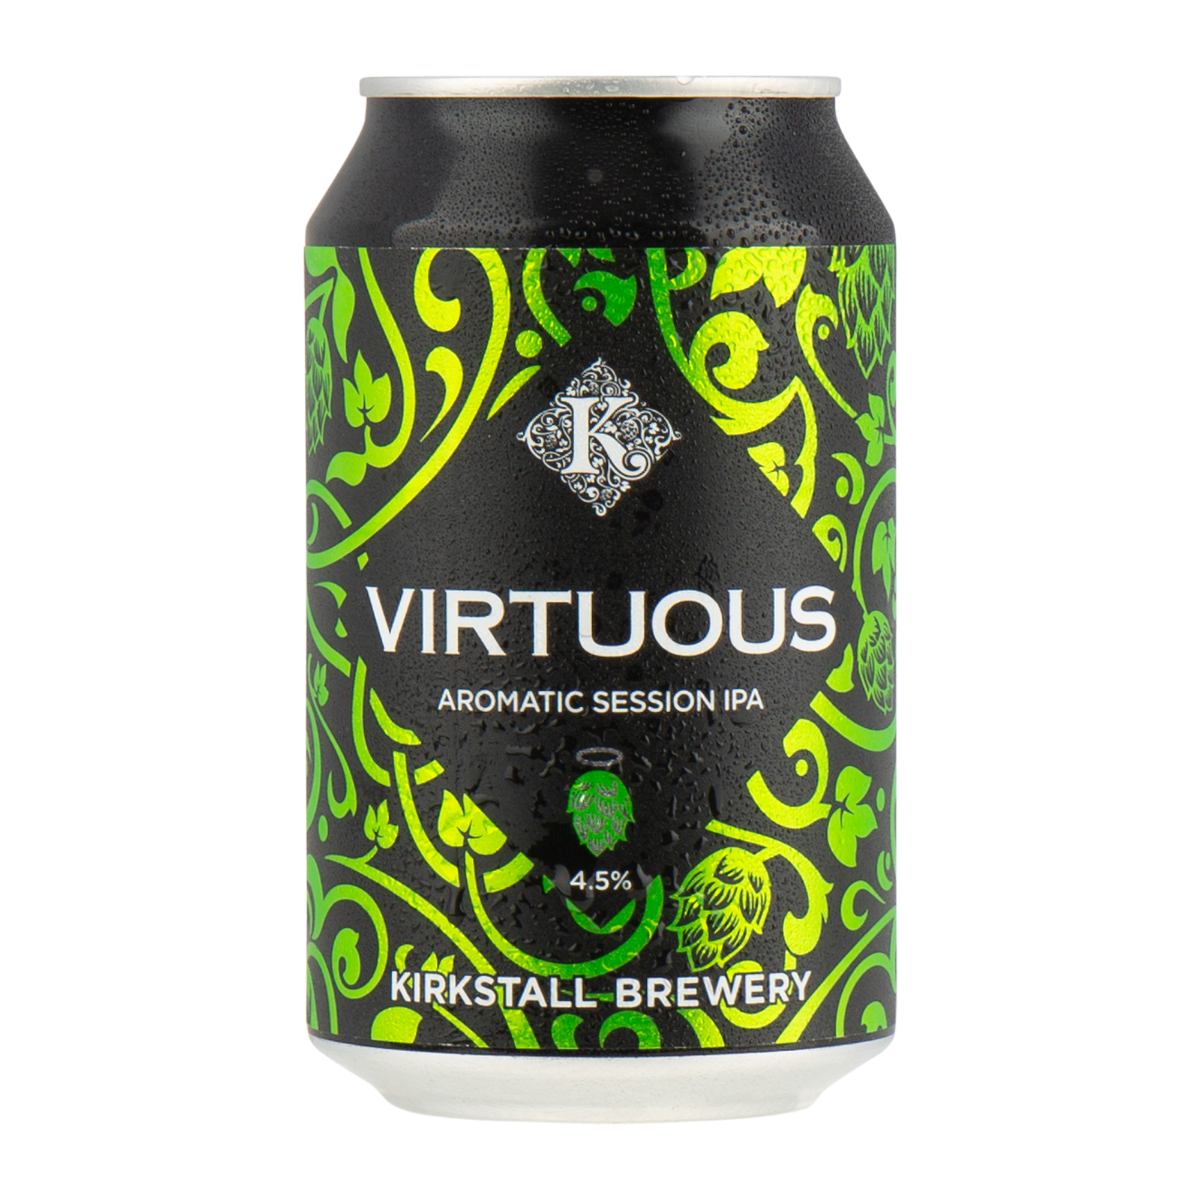 KIRKSTALL BREWERY VIRTUOUS SESSION IPA (GLUTEN FREE) (4.5%ABV)  Lovely refreshing gluten free IPA with a lower ABV.  €2.95